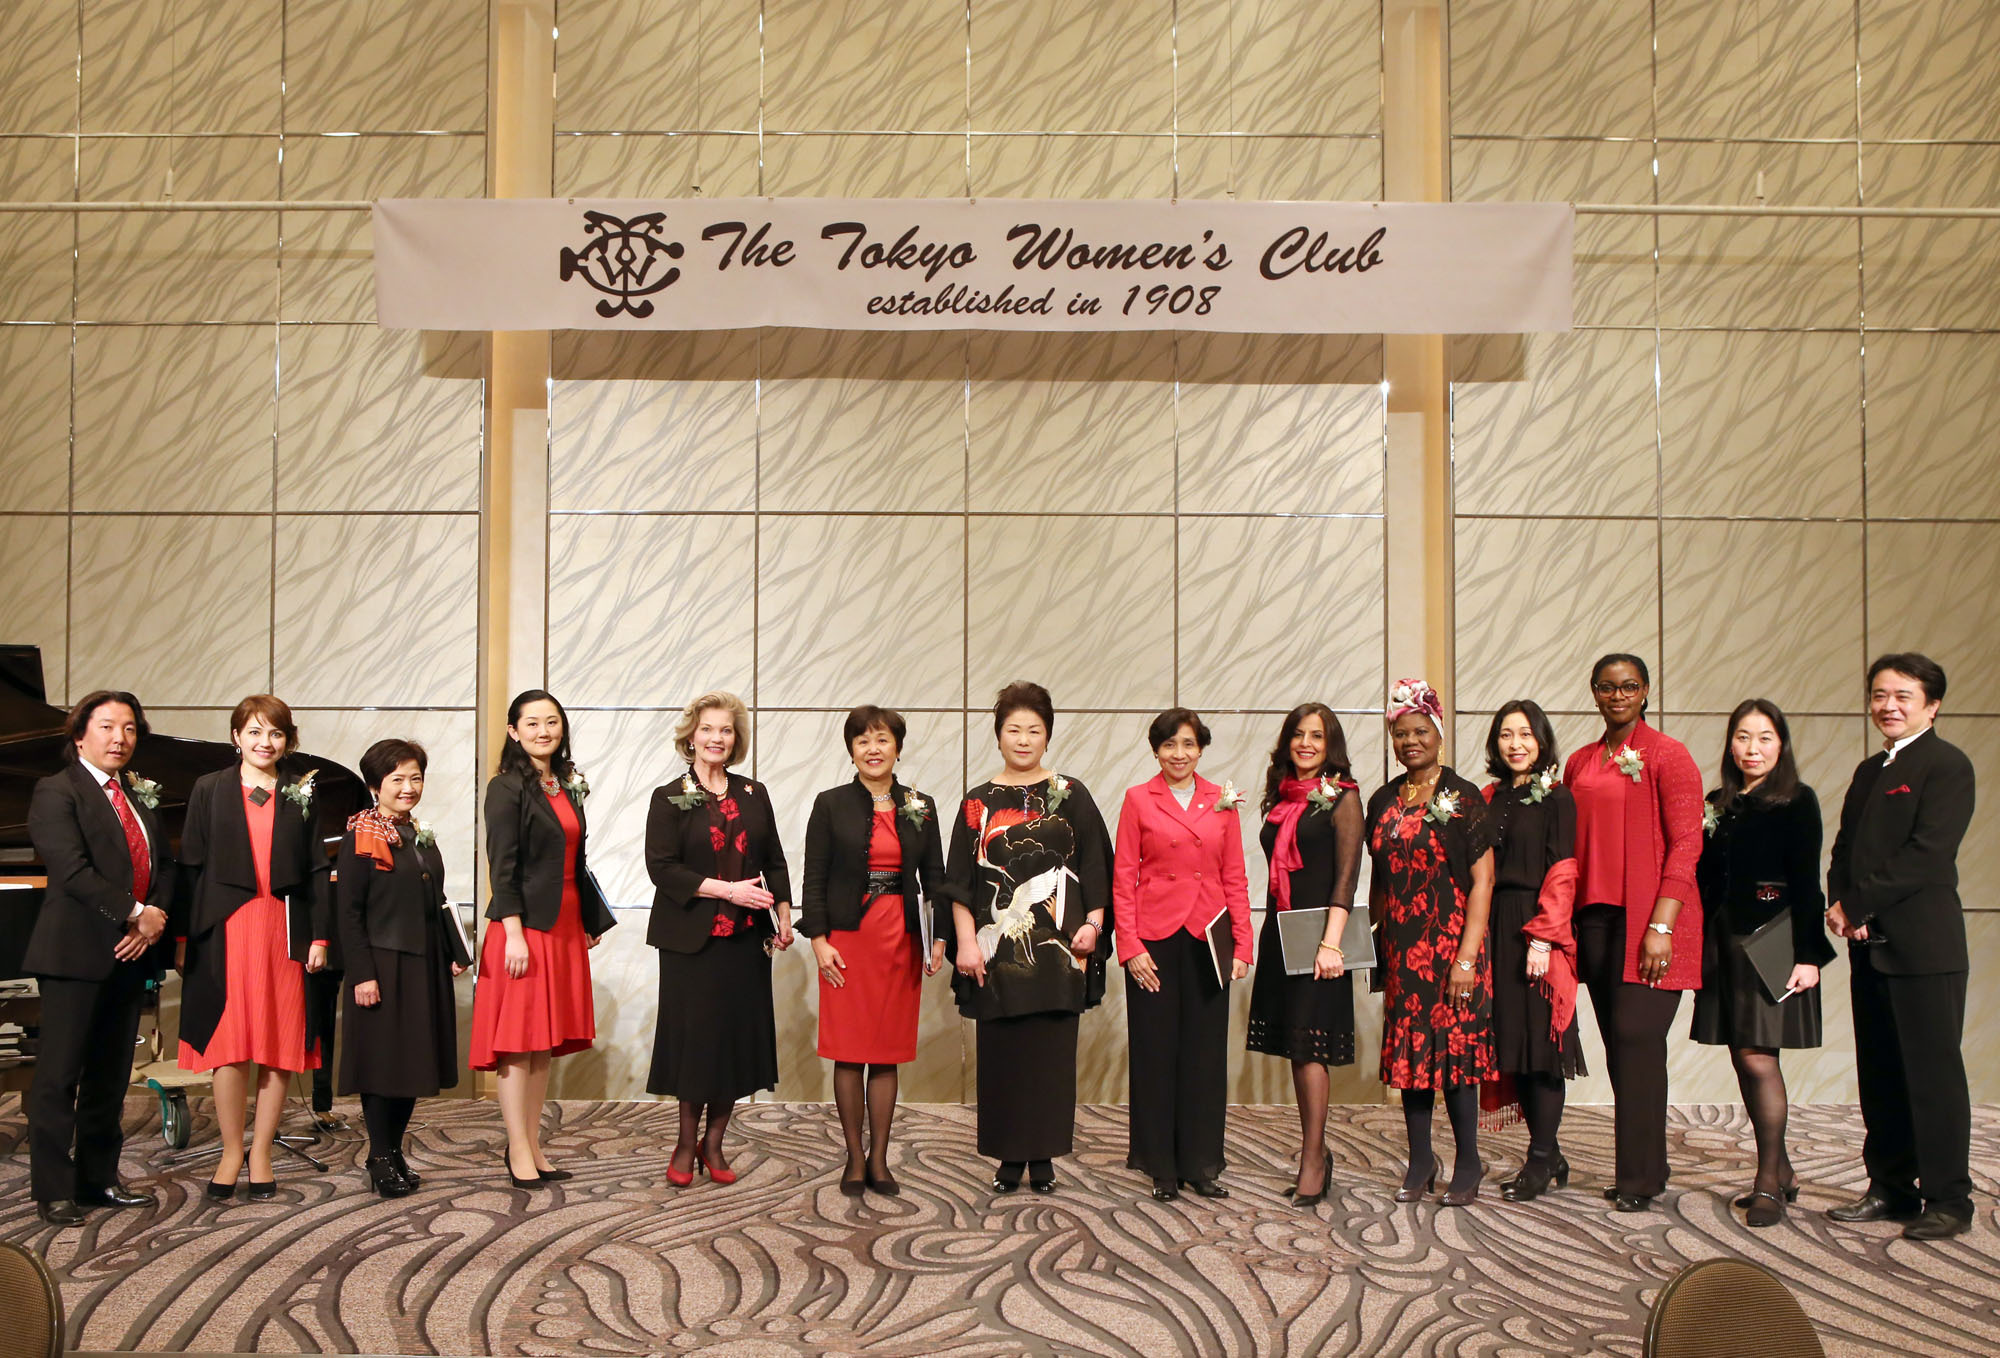 The Beyond  Borders Choir, composed of diplomats and their relatives from Cameroon, Denmark, El Salvador, Micronesia, Morocco, Palestine, Panama, Turkey, Venezuela and Vietnam, pose with musicians and event organizers following a concert aimed at promoting peace, harmony and prosperity at a charity Christmas party hosted by the Tokyo Women's Club at the Cerulean Tower Tokyu Hotel on Dec. 13. |  VIETNAM EMBASSY